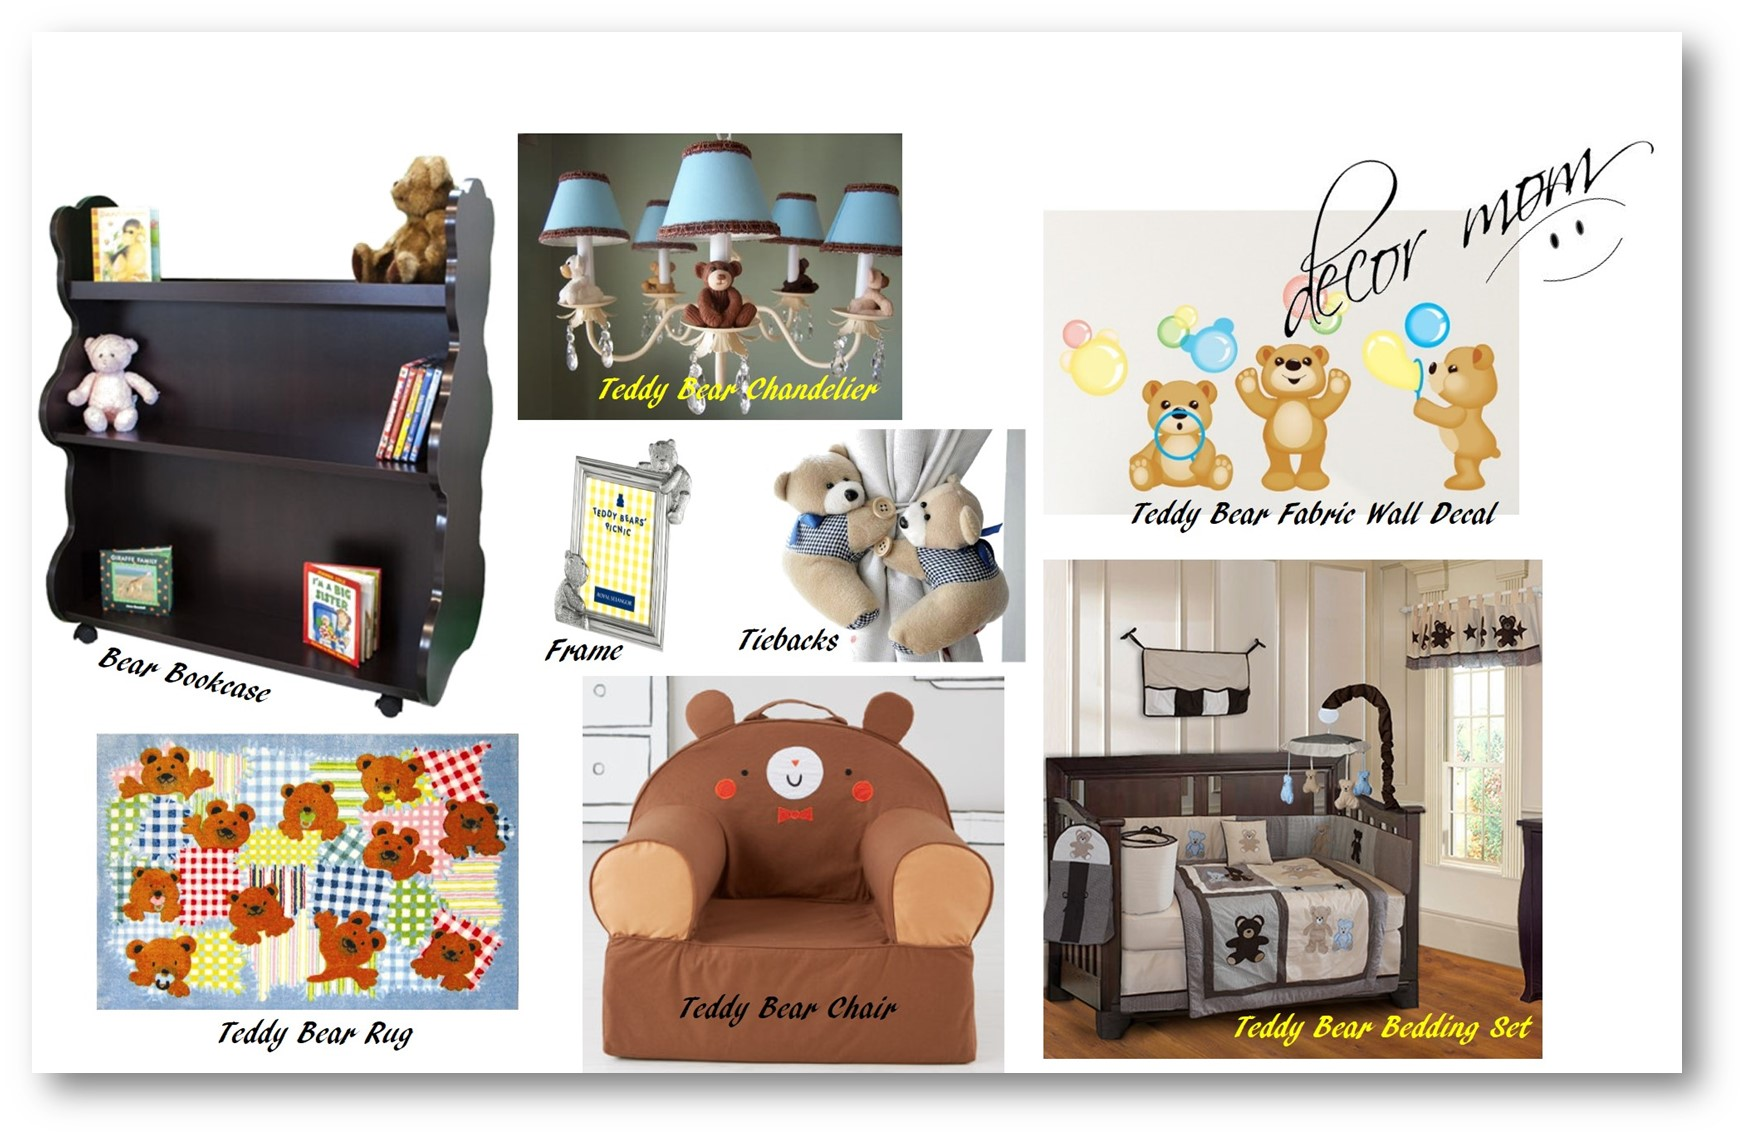 Teddy Bear Nursery Theme - Vision Board 1